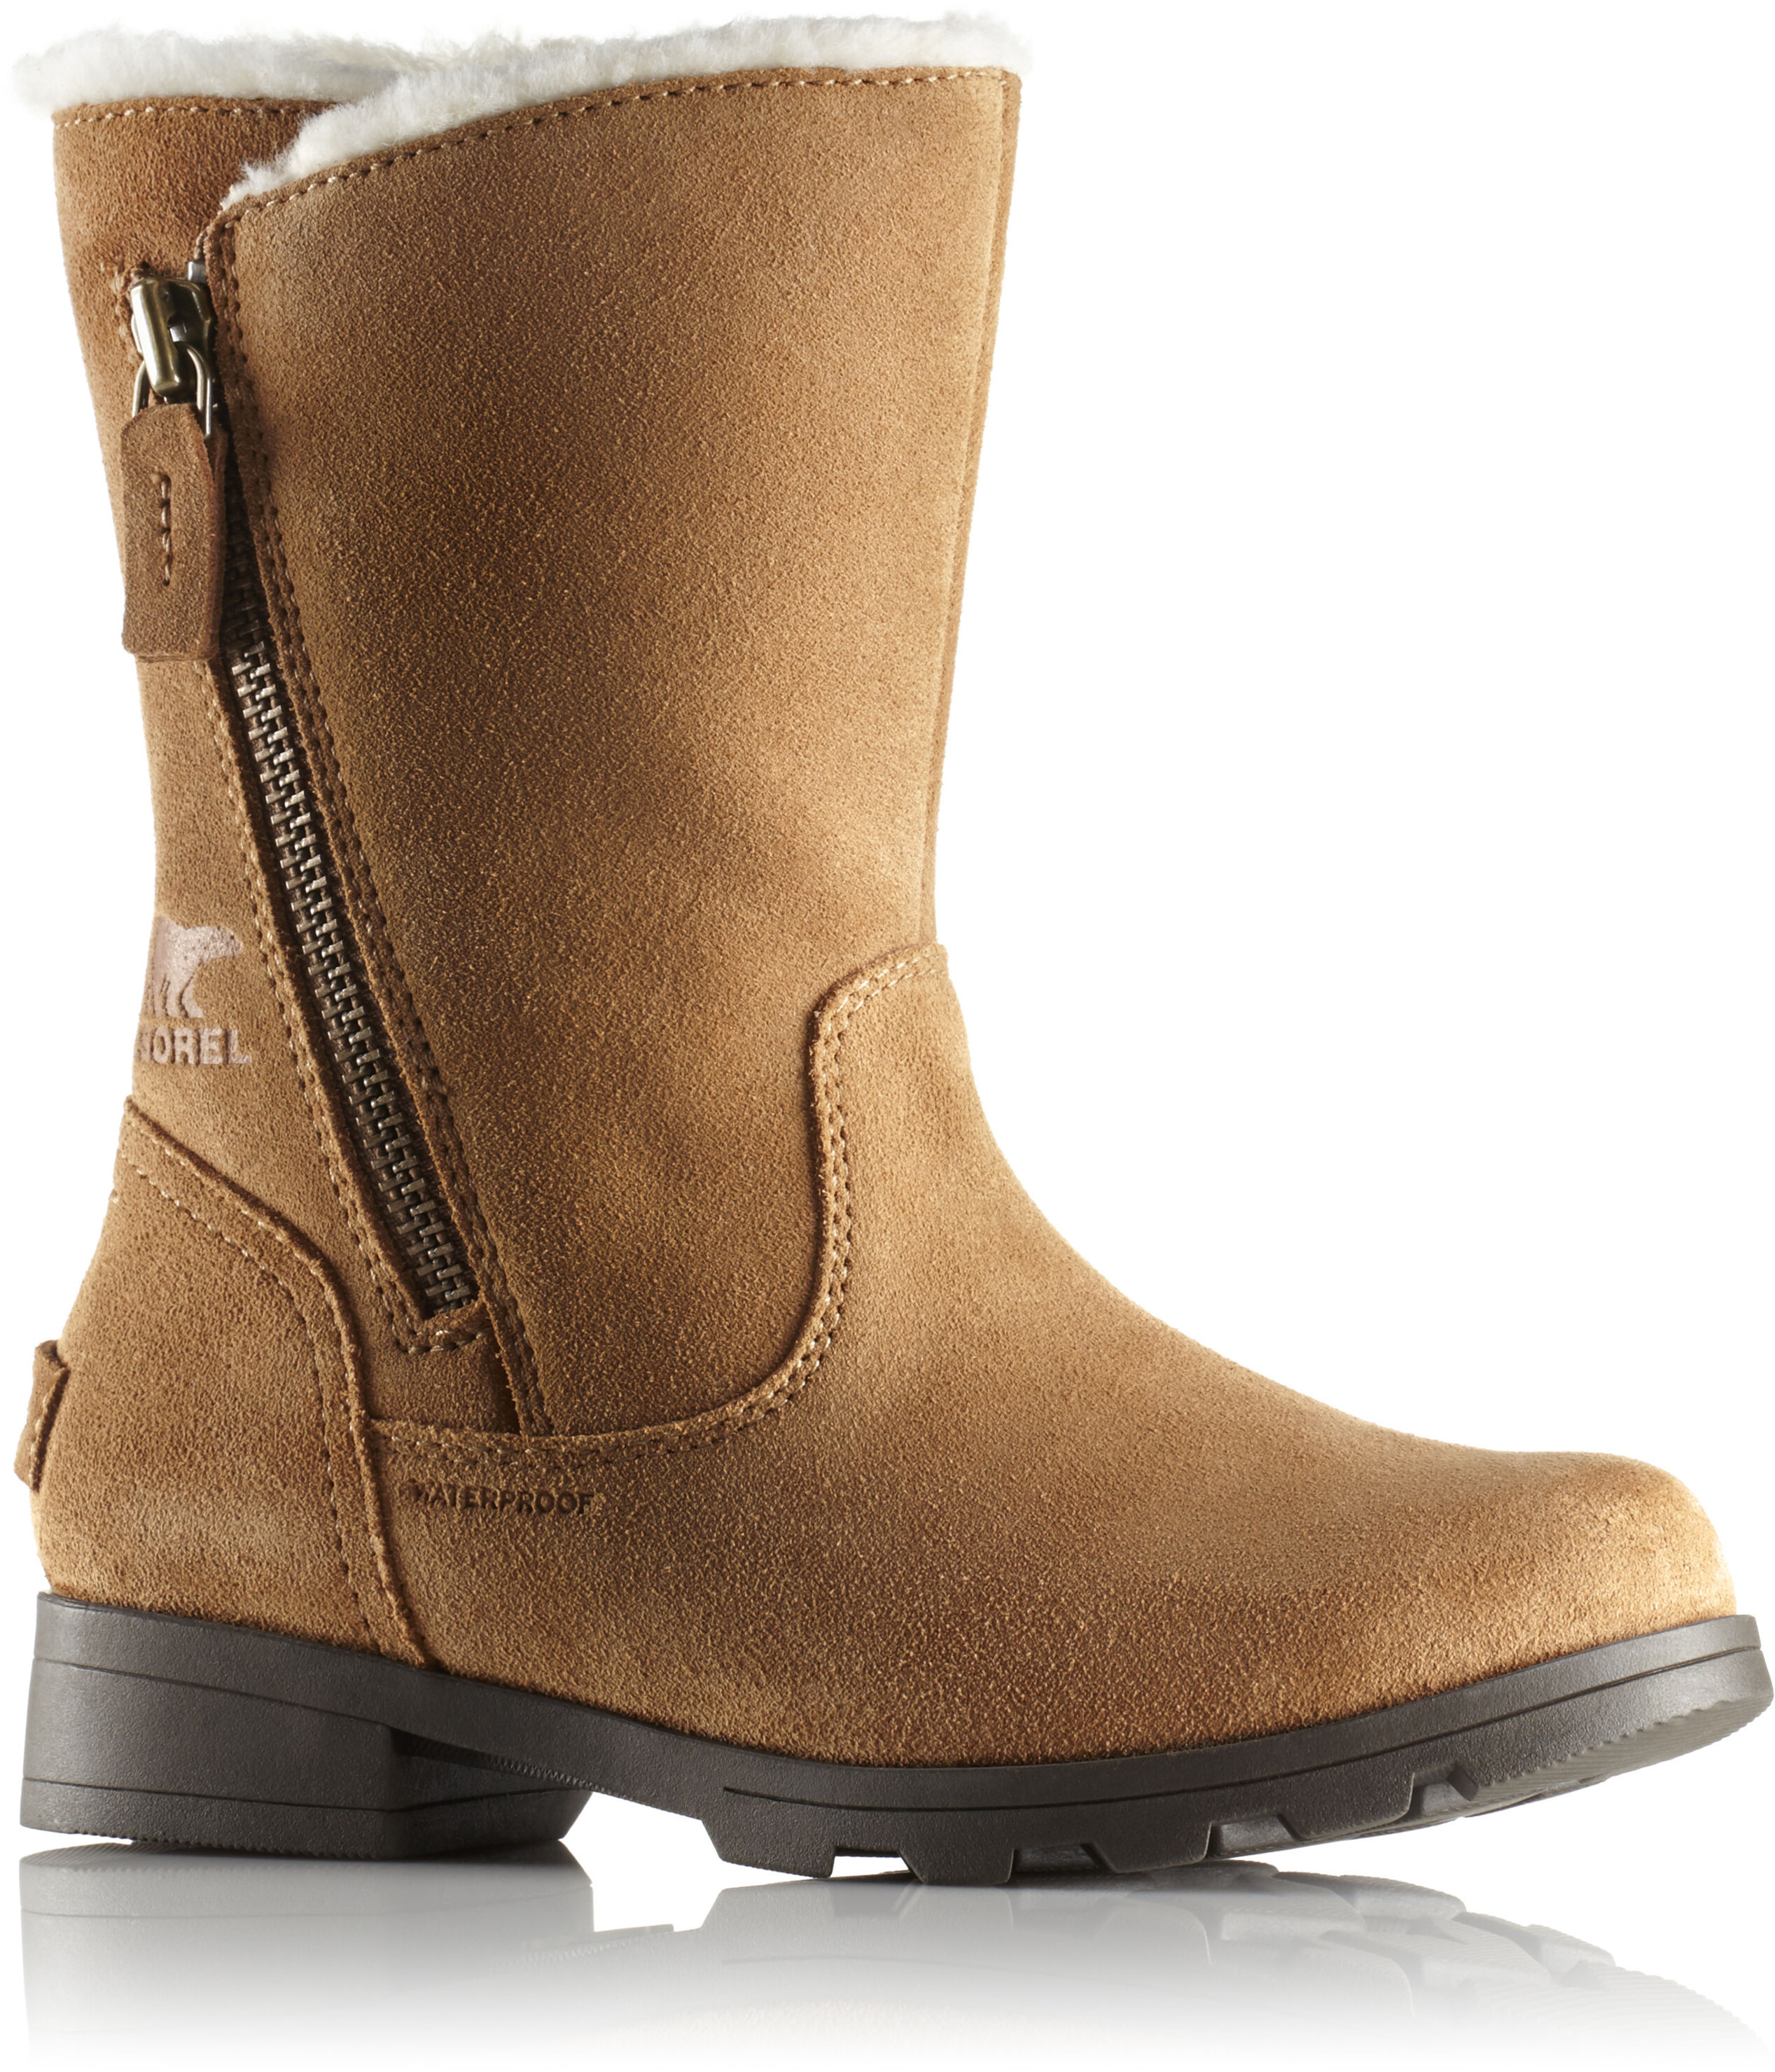 d23ac7f4cc5864 Sorel Emelie Foldover Boots Youth Camel Brown Natural